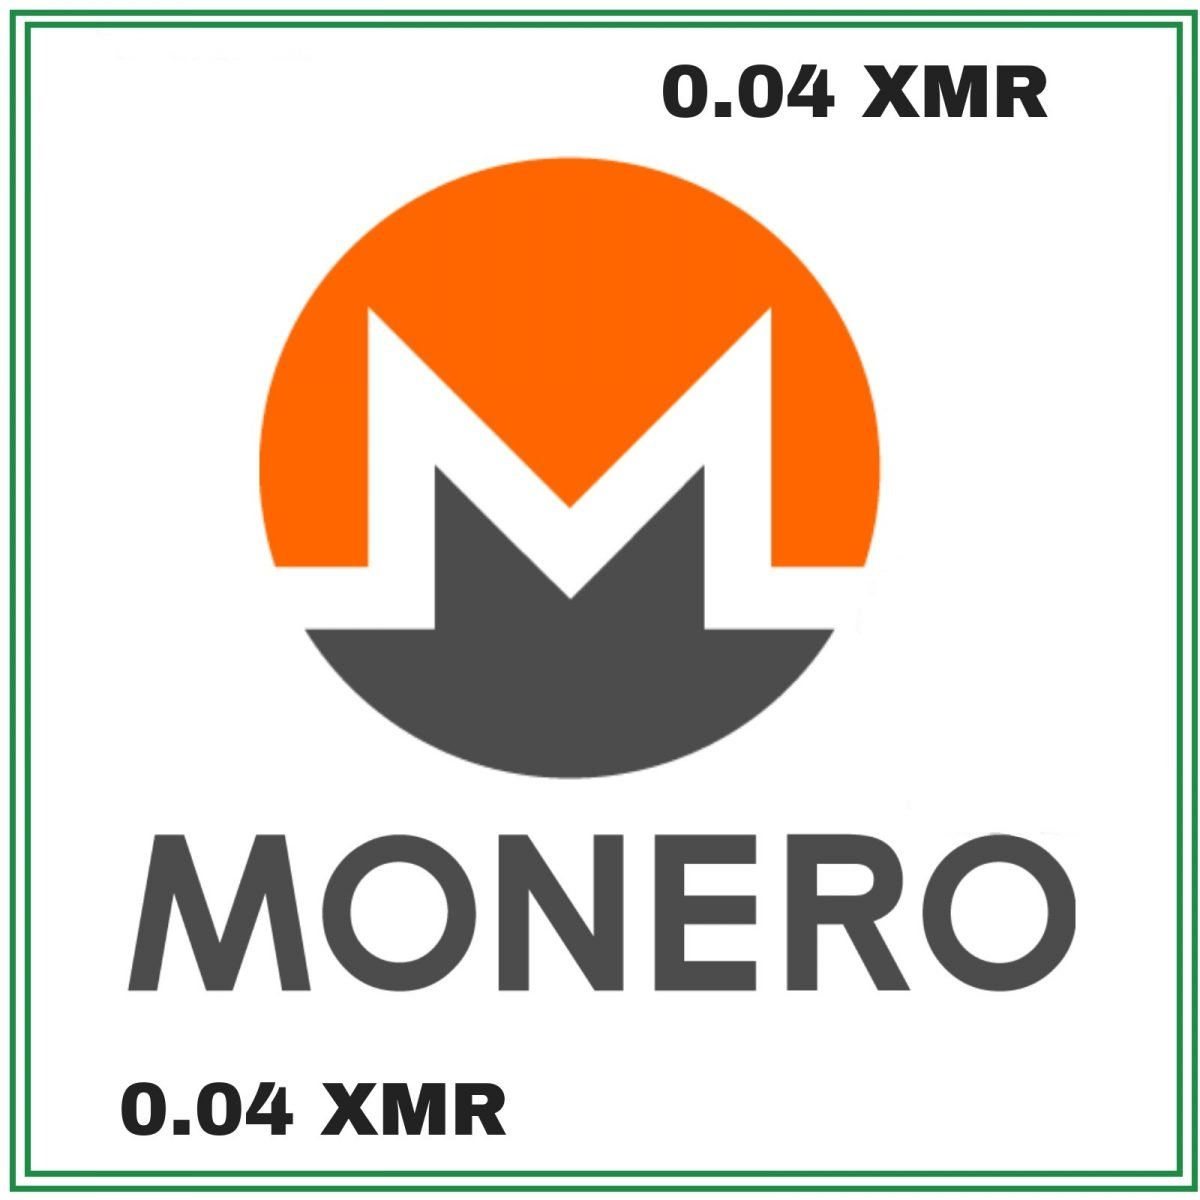 Monero update services